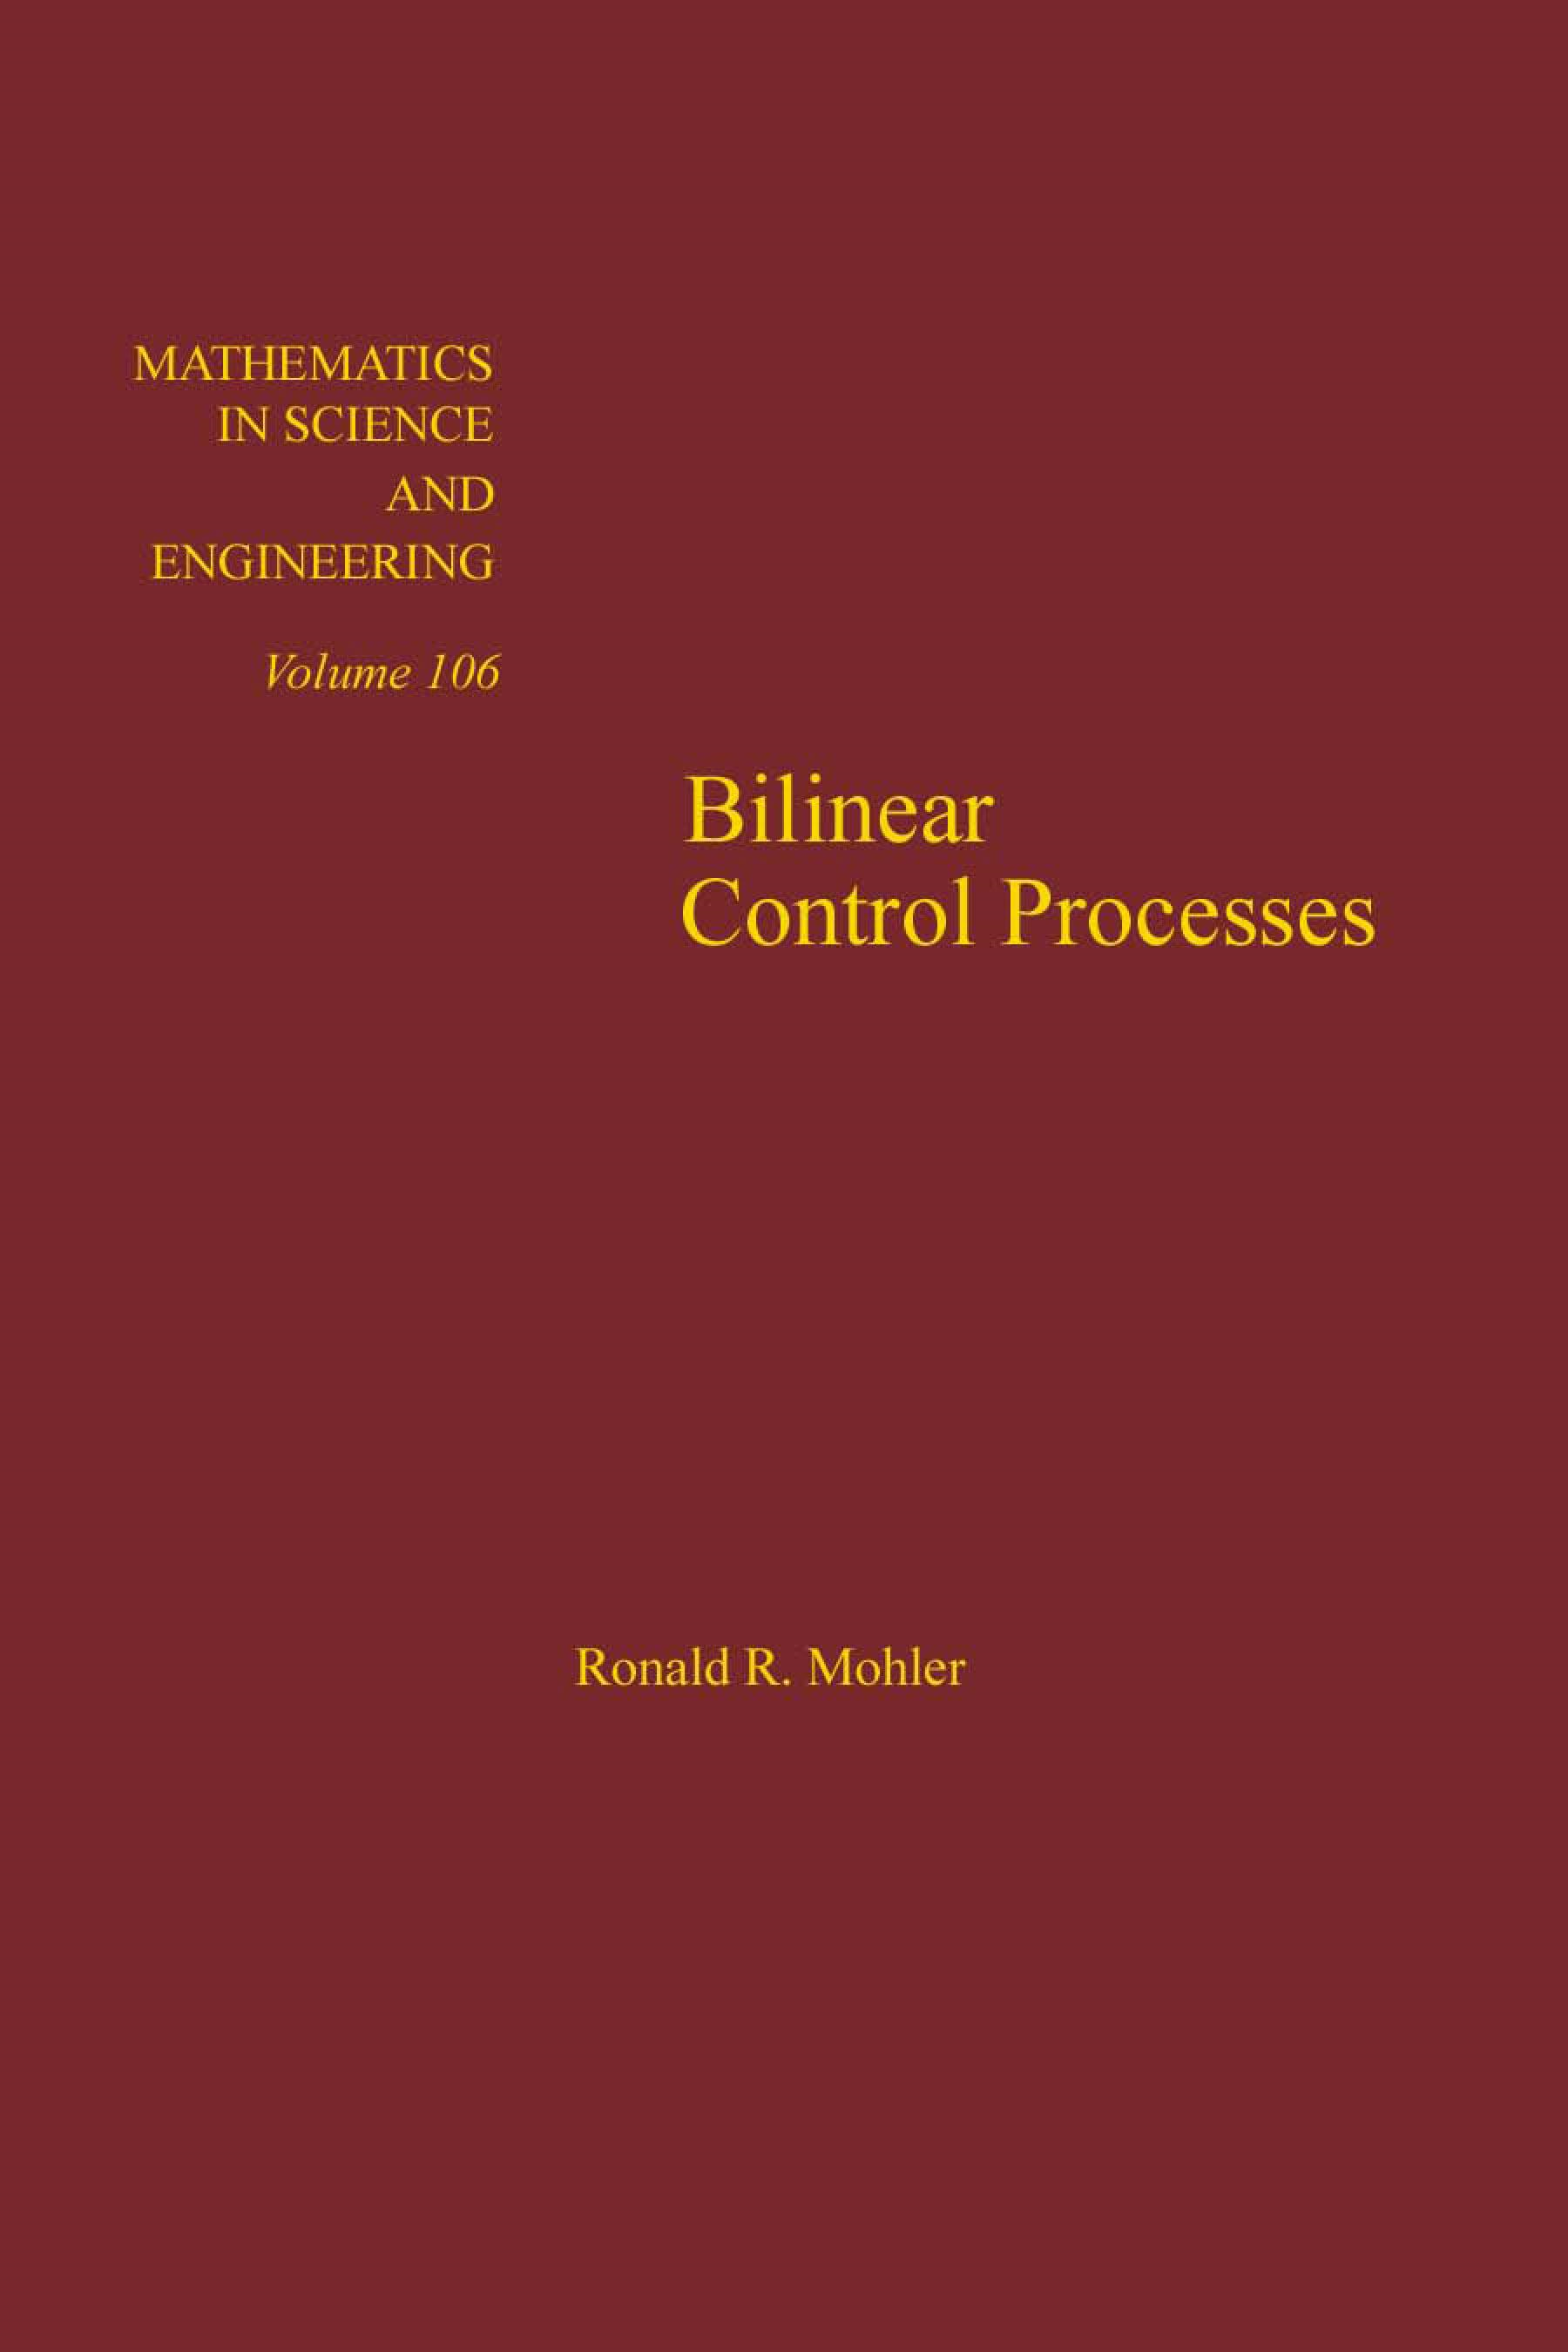 Bilinear control processes: with applications to engineering, ecology, and medicine: with applications to engineering, ecology, and medicine